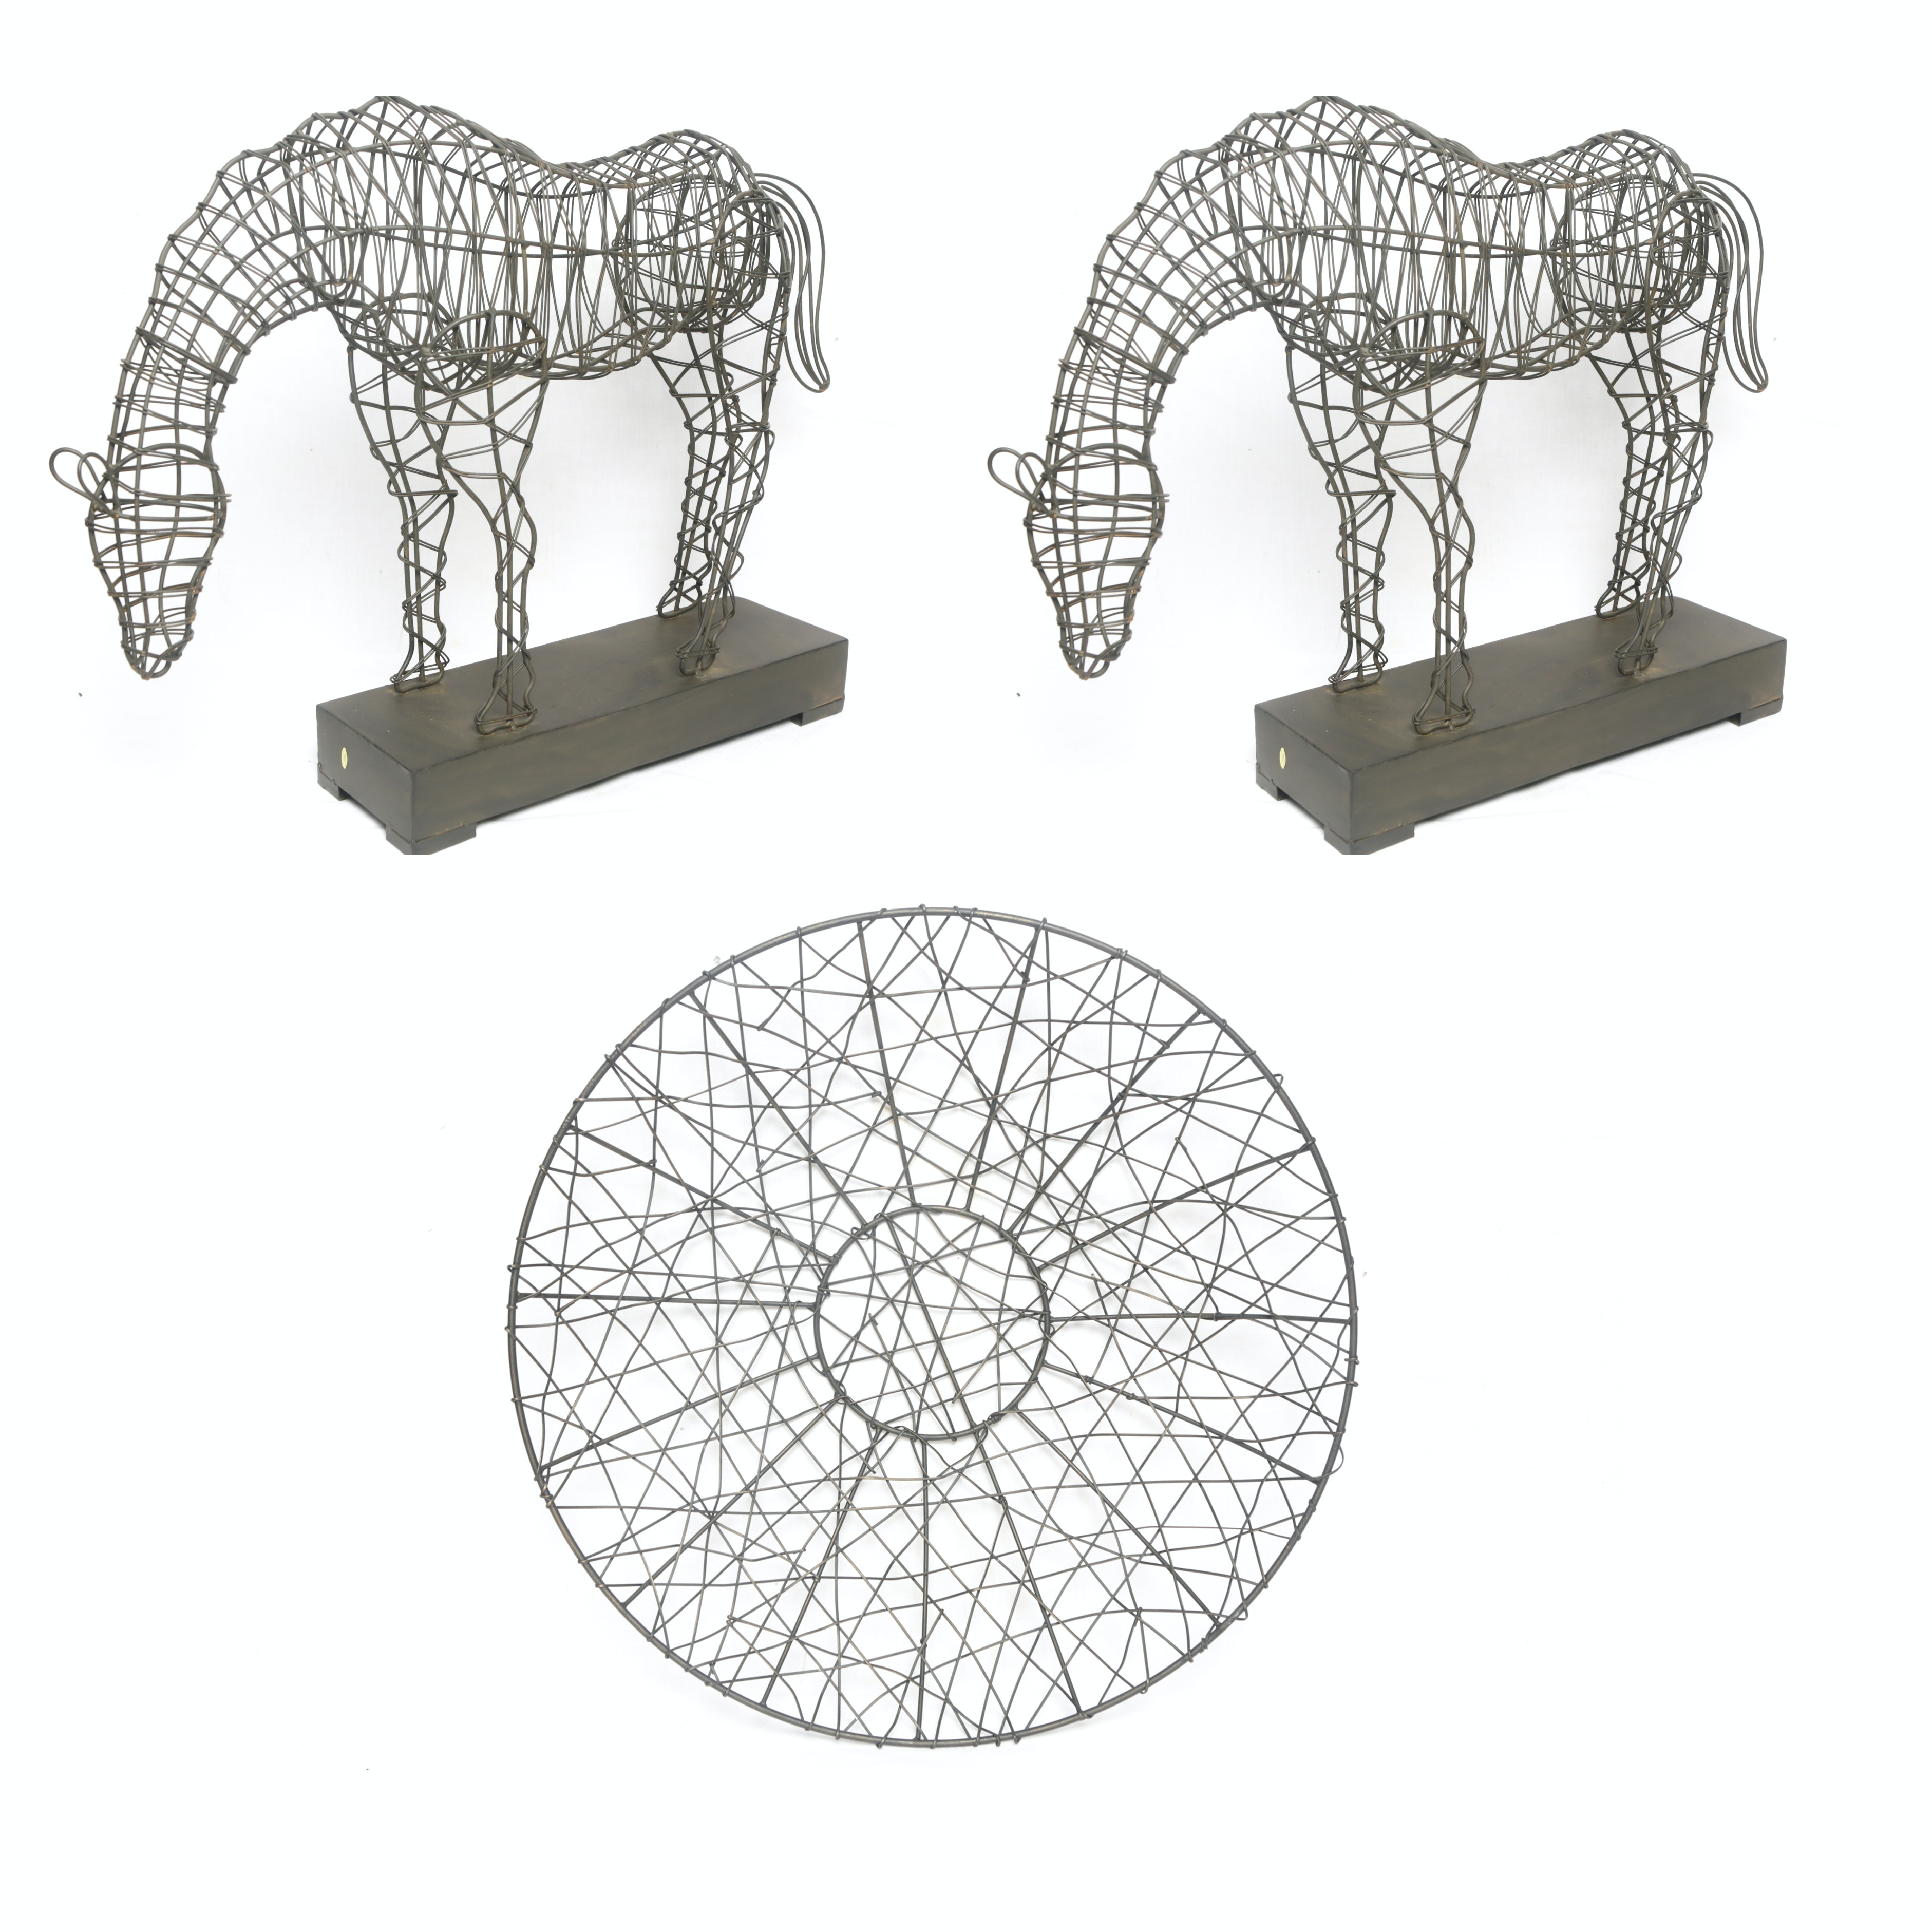 Woven Wire Horse Statuaries and Round Wall Decor